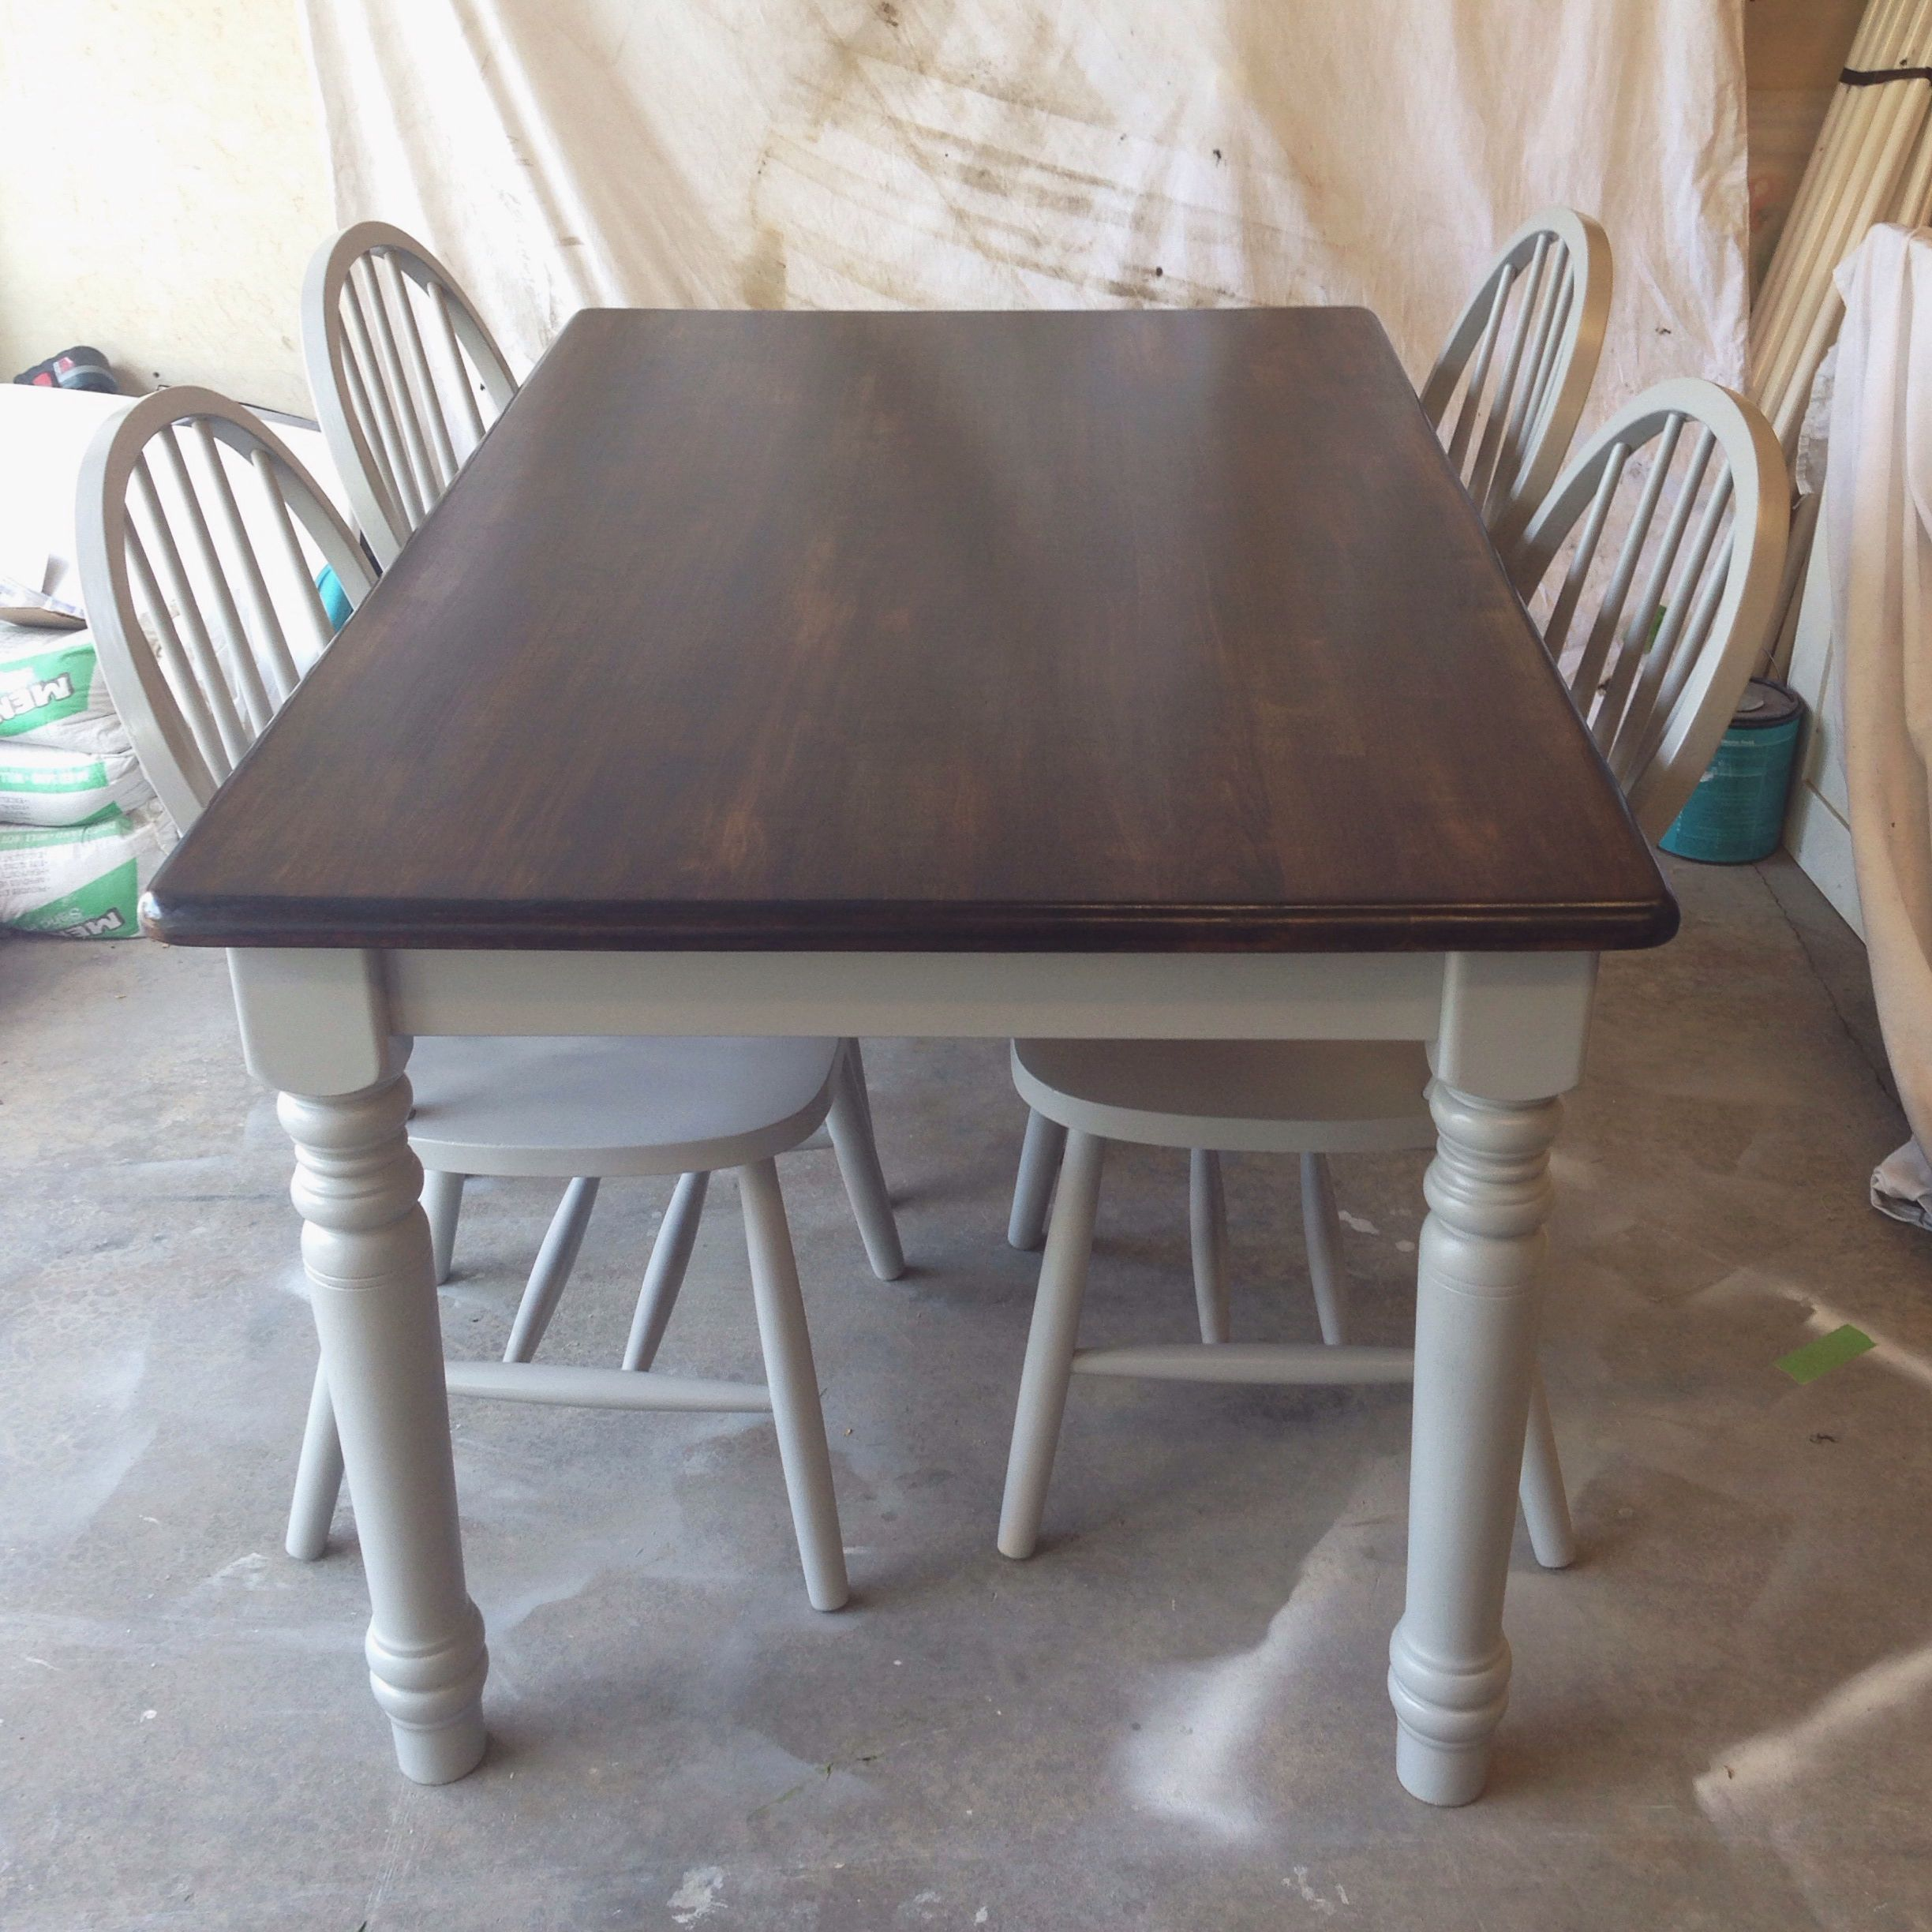 Painted With Rustoleum Spray Paint Stone Gray Minwax Stain